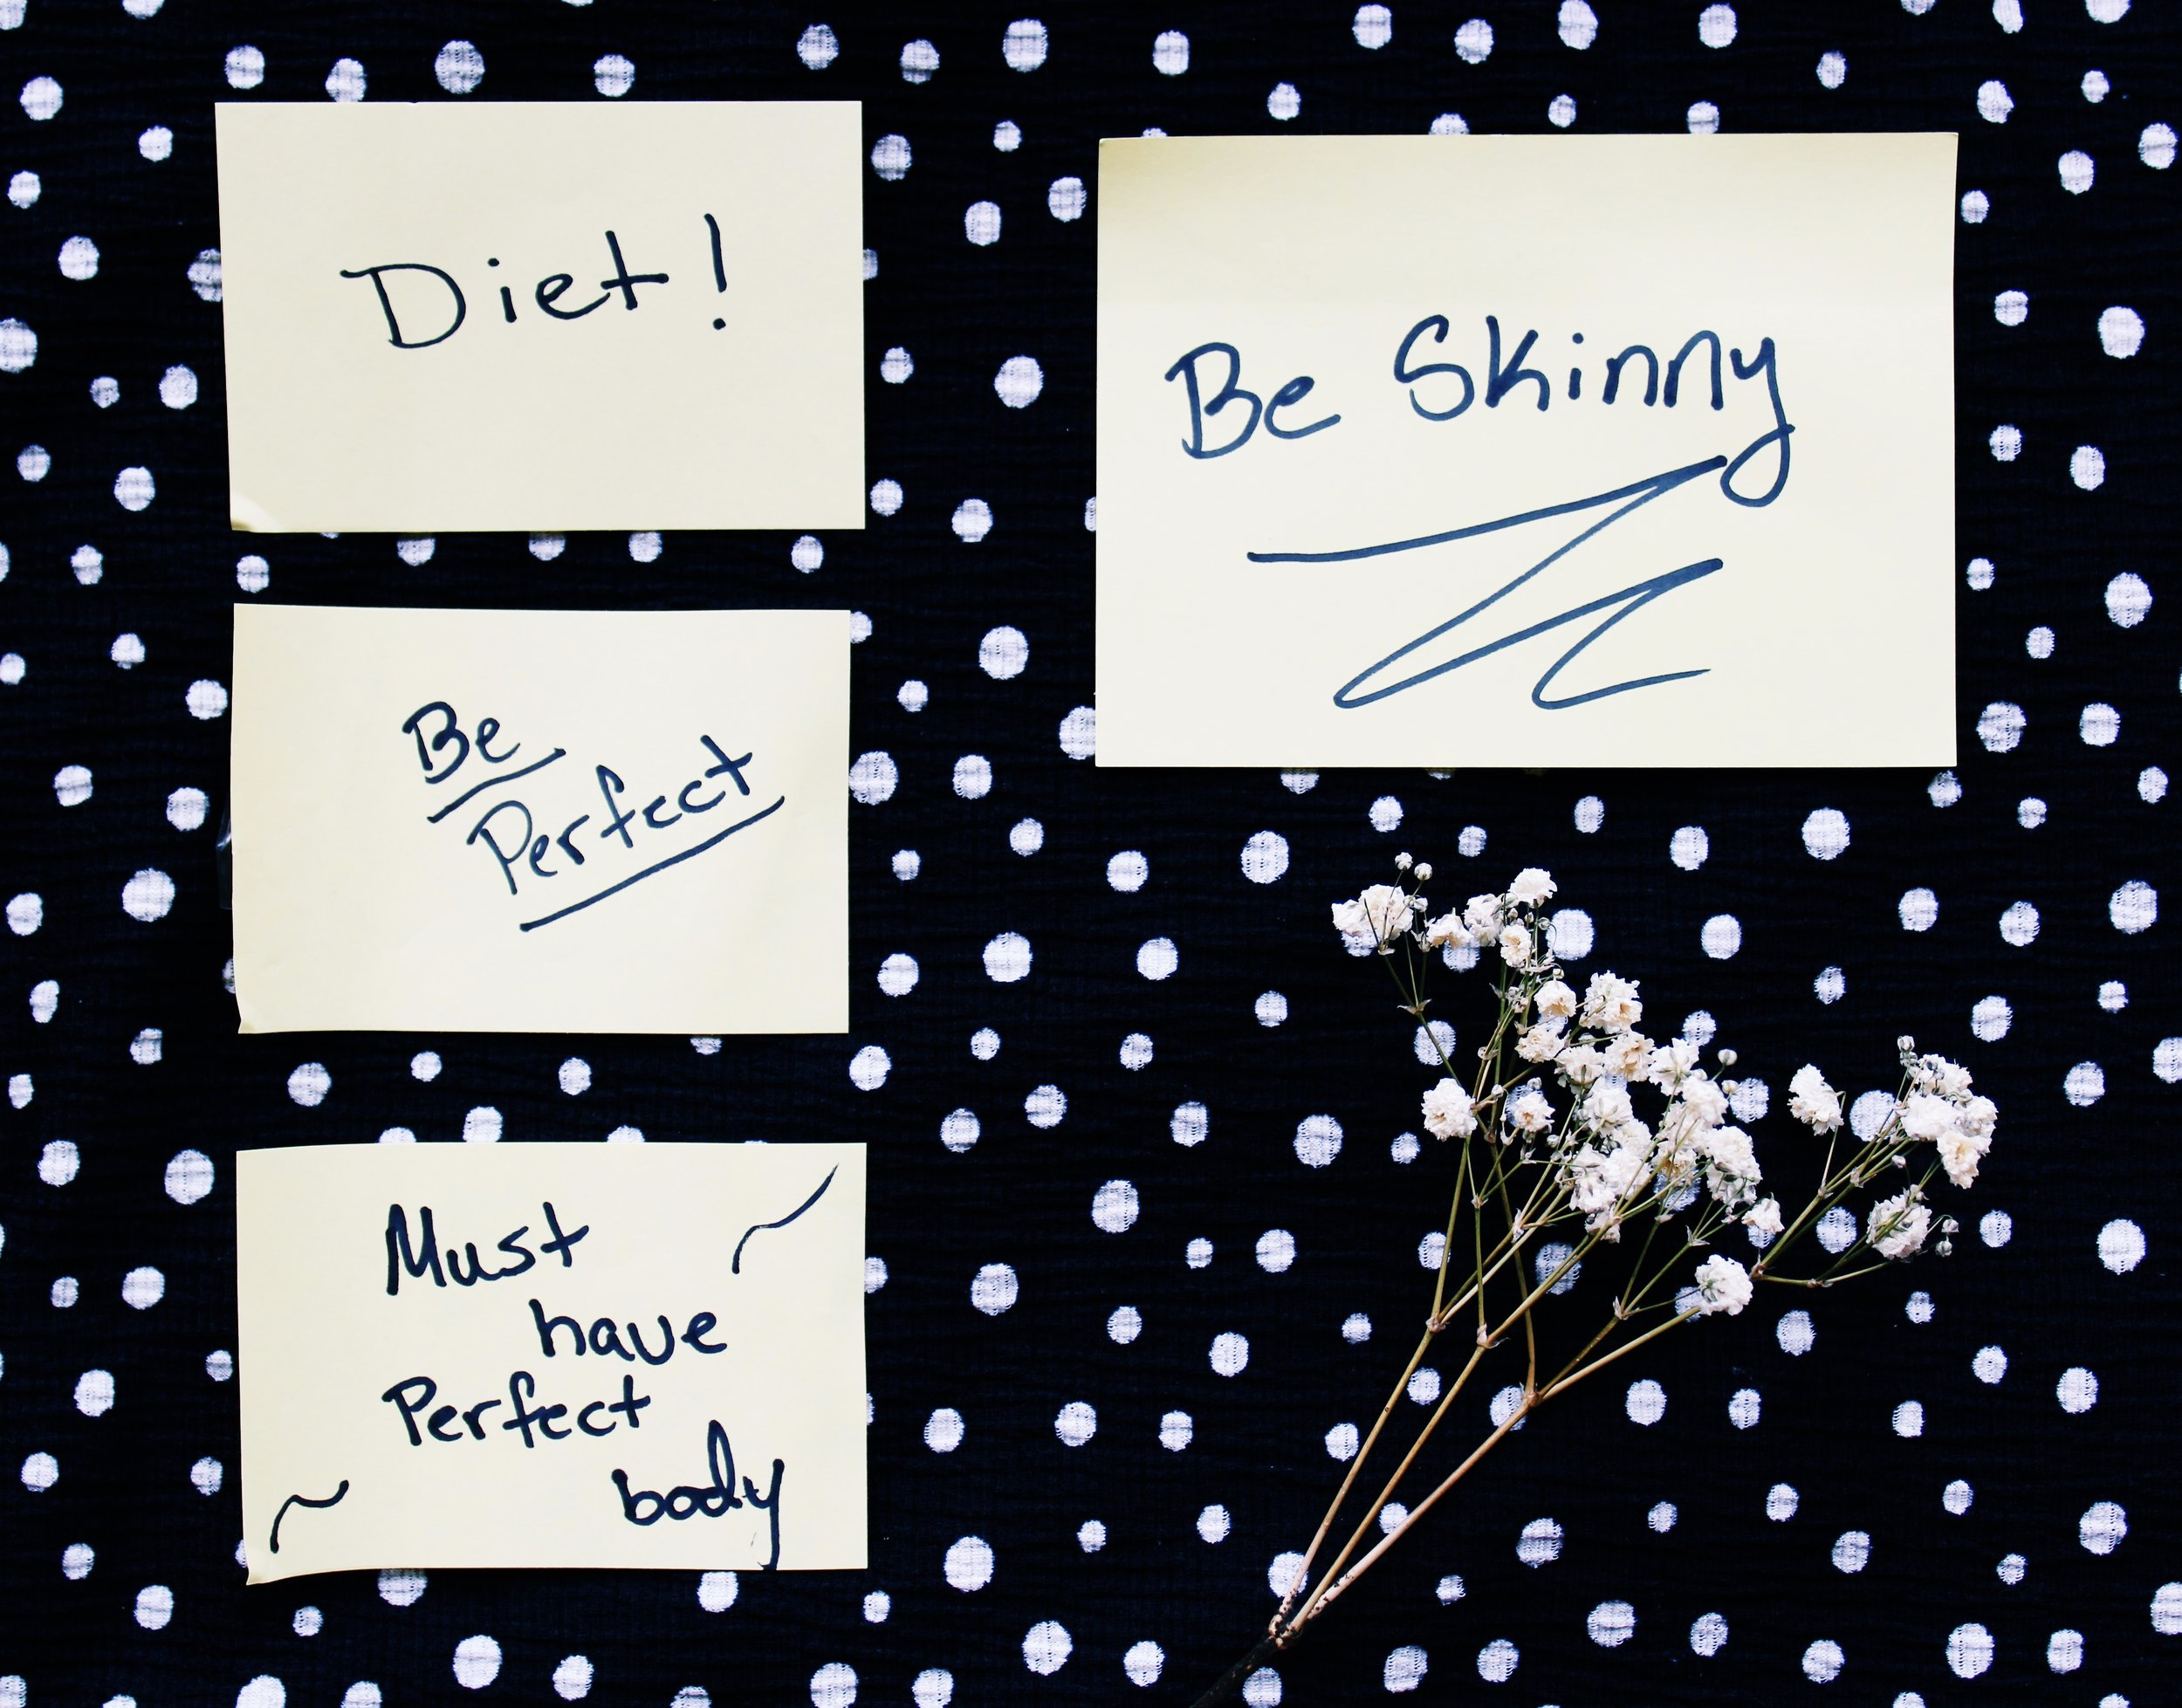 The Truth Behind Eating Disorders - An interview with Dr.Conason